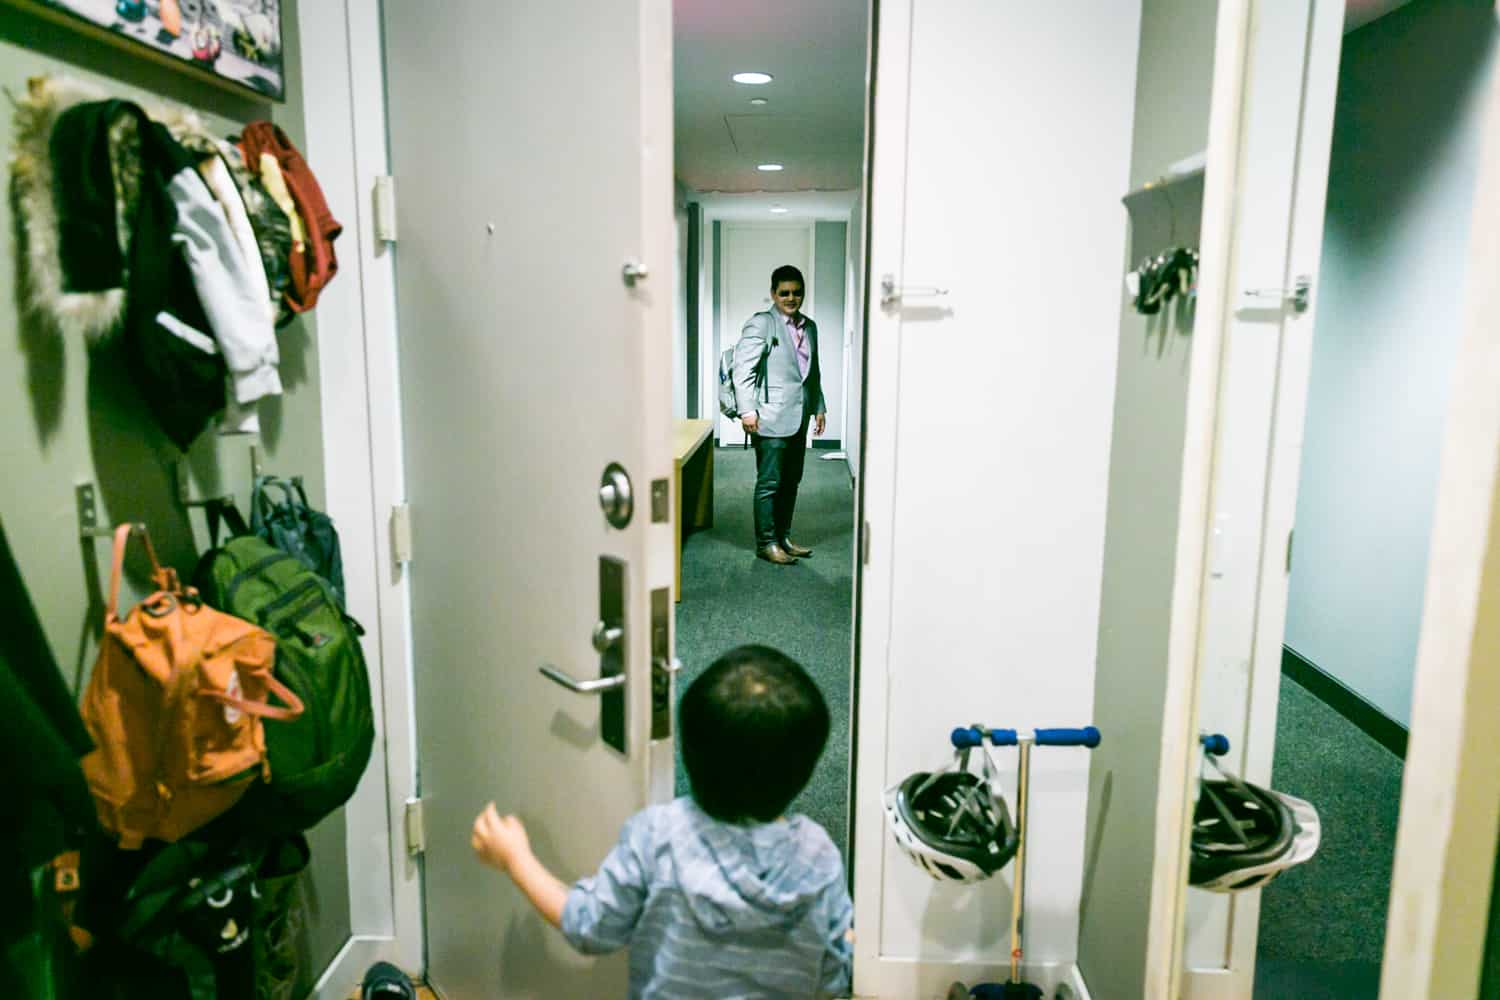 Little boy opening door to see father in hallway